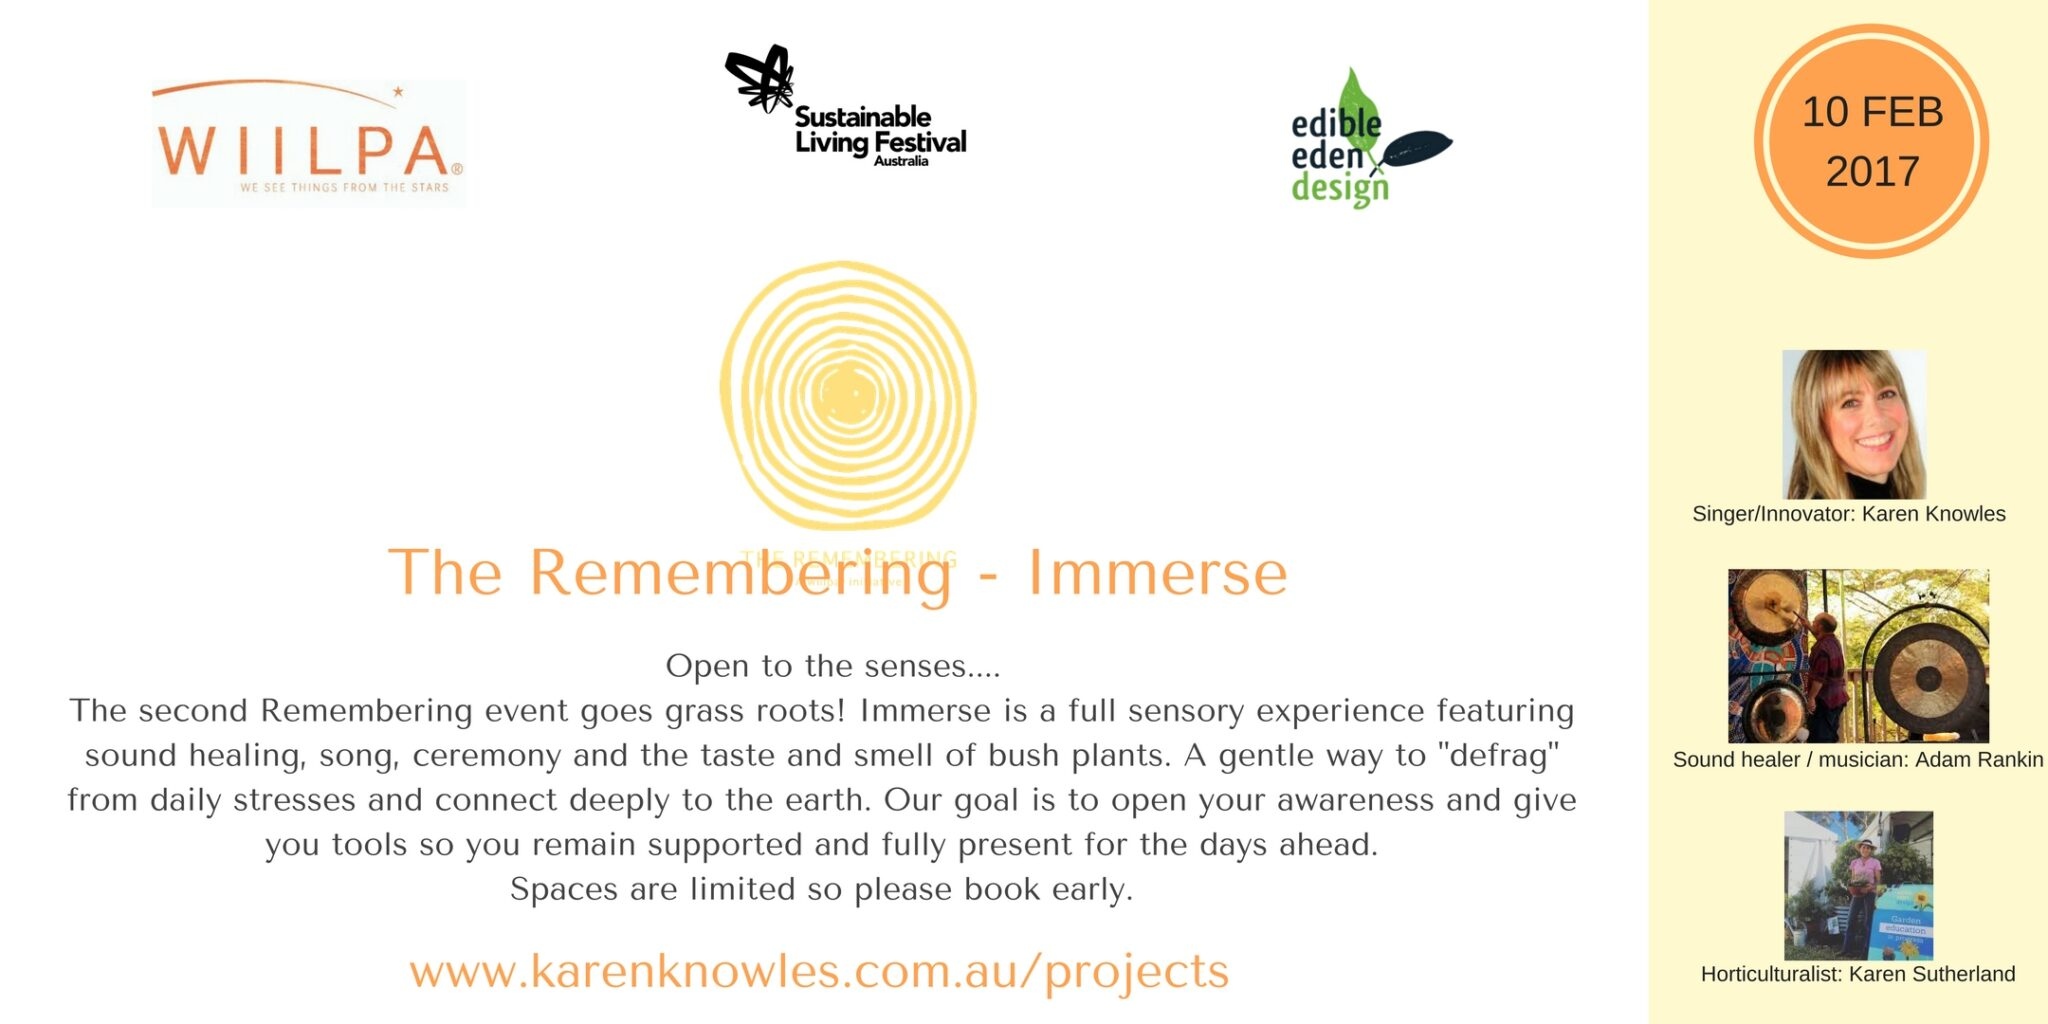 The Remembering - Immerse - part of the National Sustainable Living Festival 2017